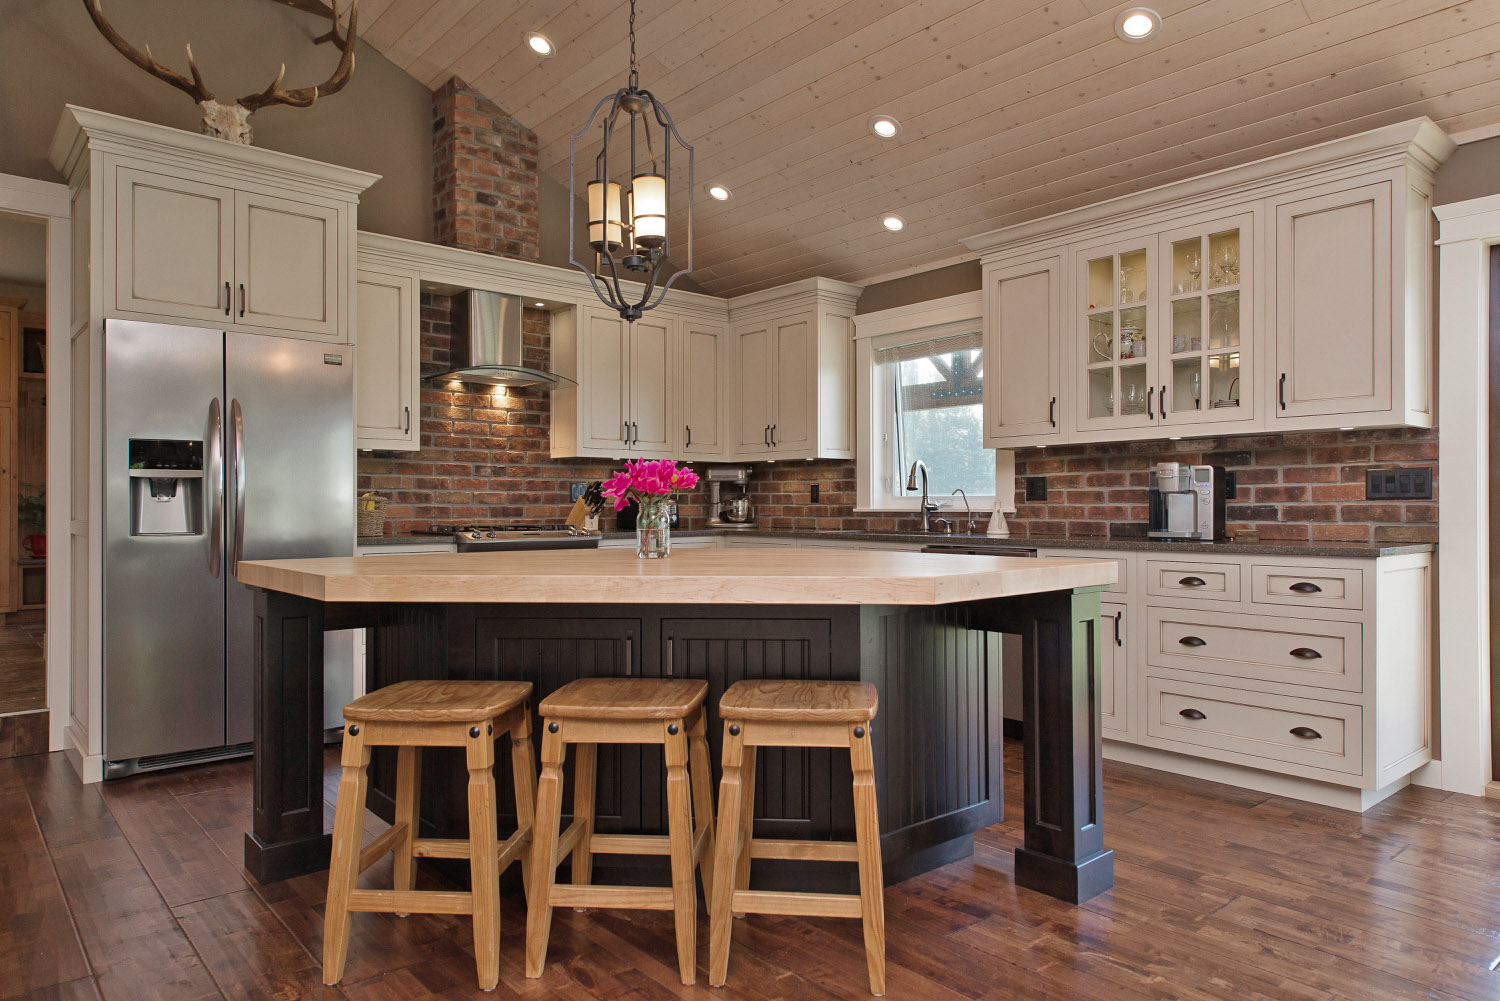 A Frame Kitchen Traditional Full Frame Kitchens Inset Doors Cedar Creek